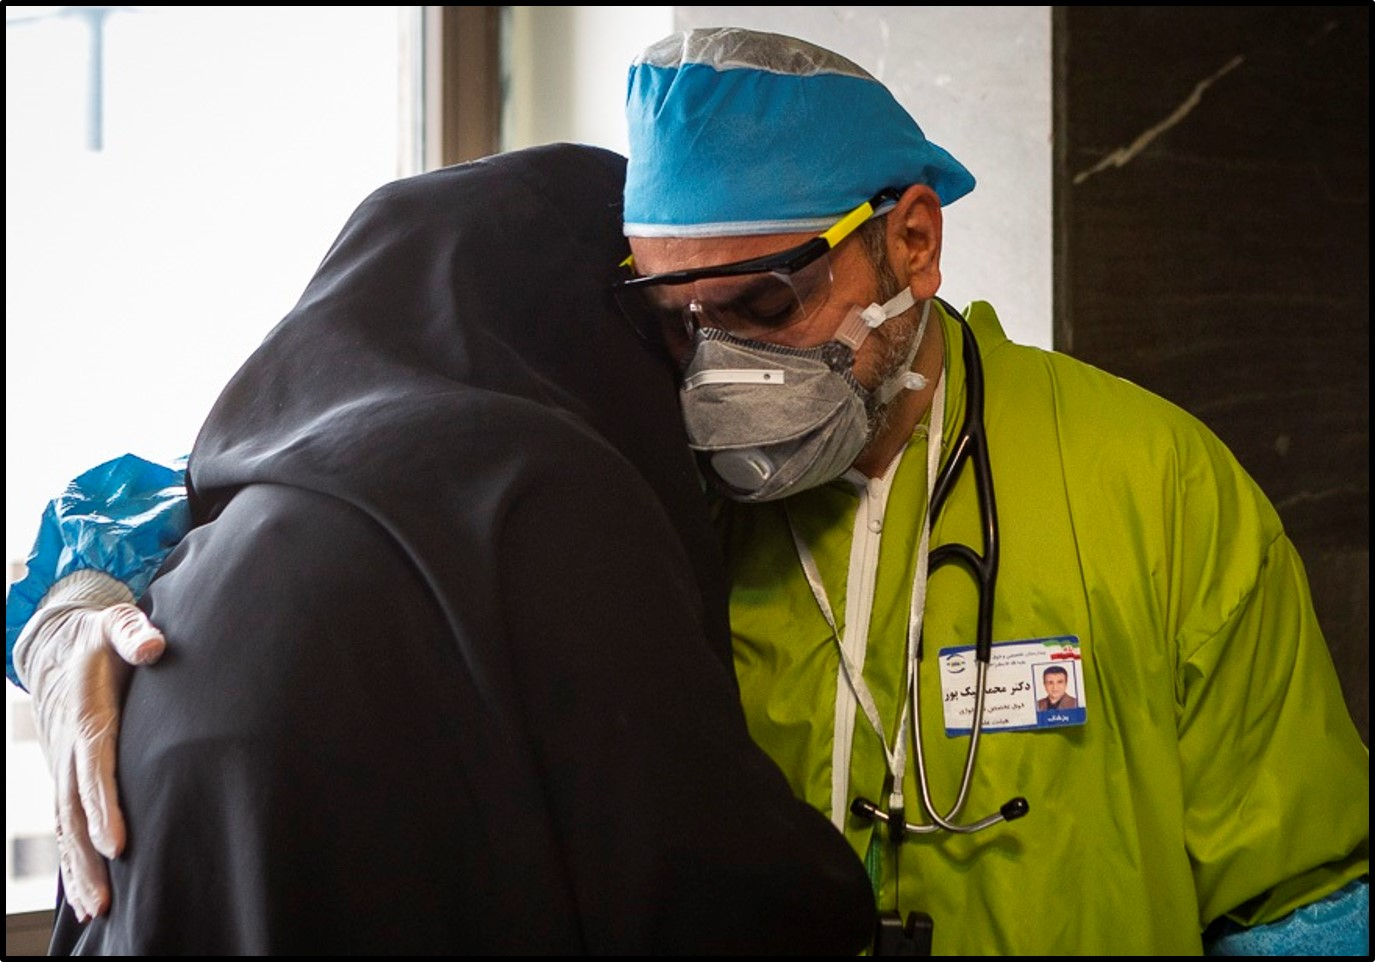 A doctor comforts a woman at a hospital in Tehran